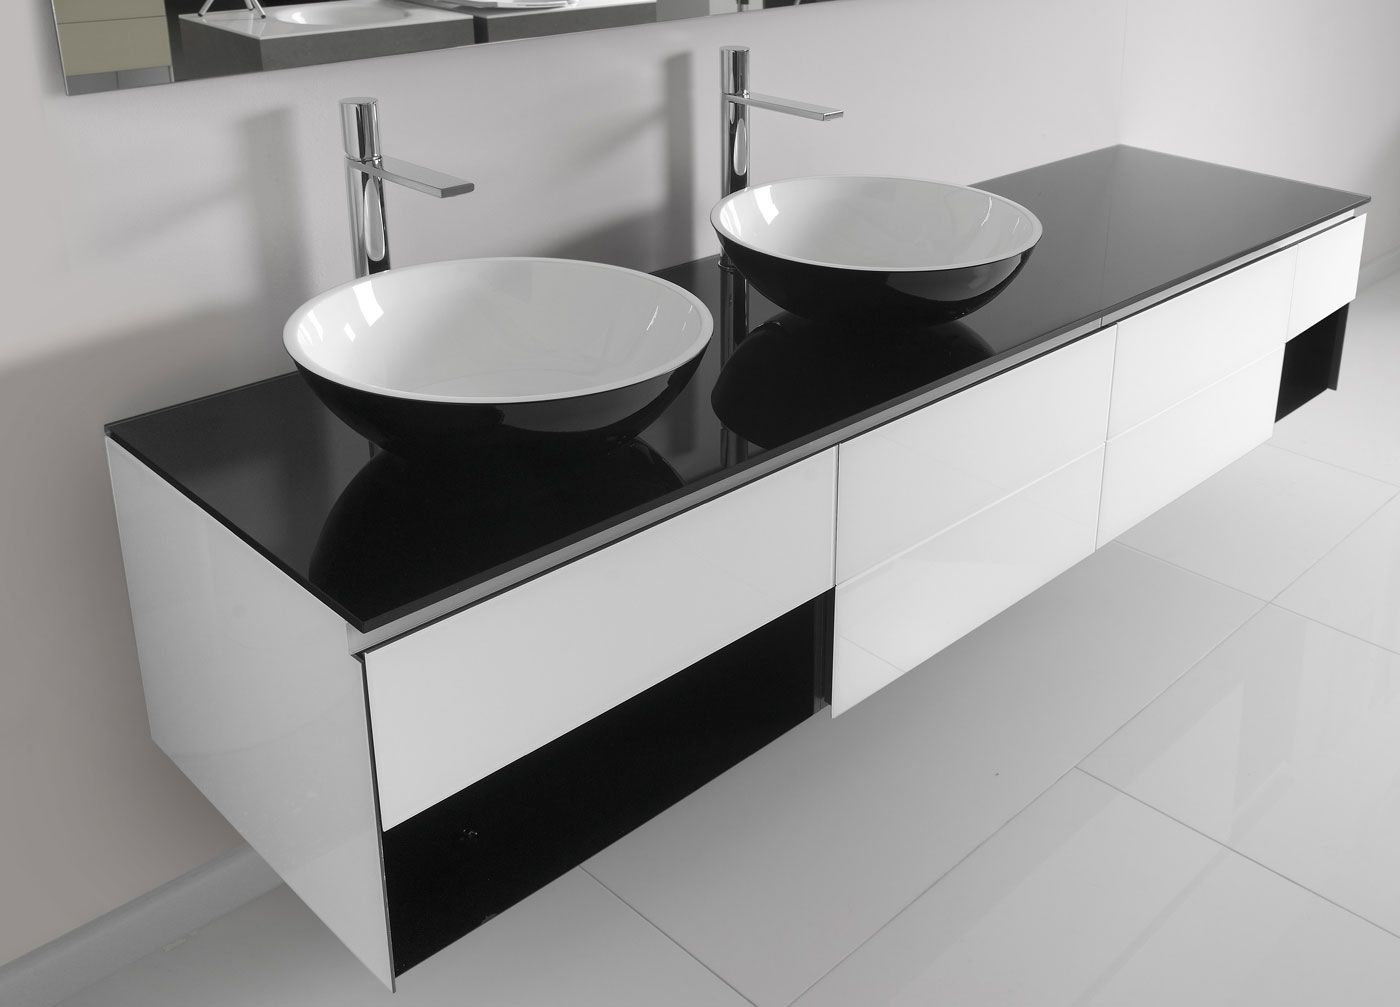 Pin by Rhomeplanner on Bagni   Pinterest